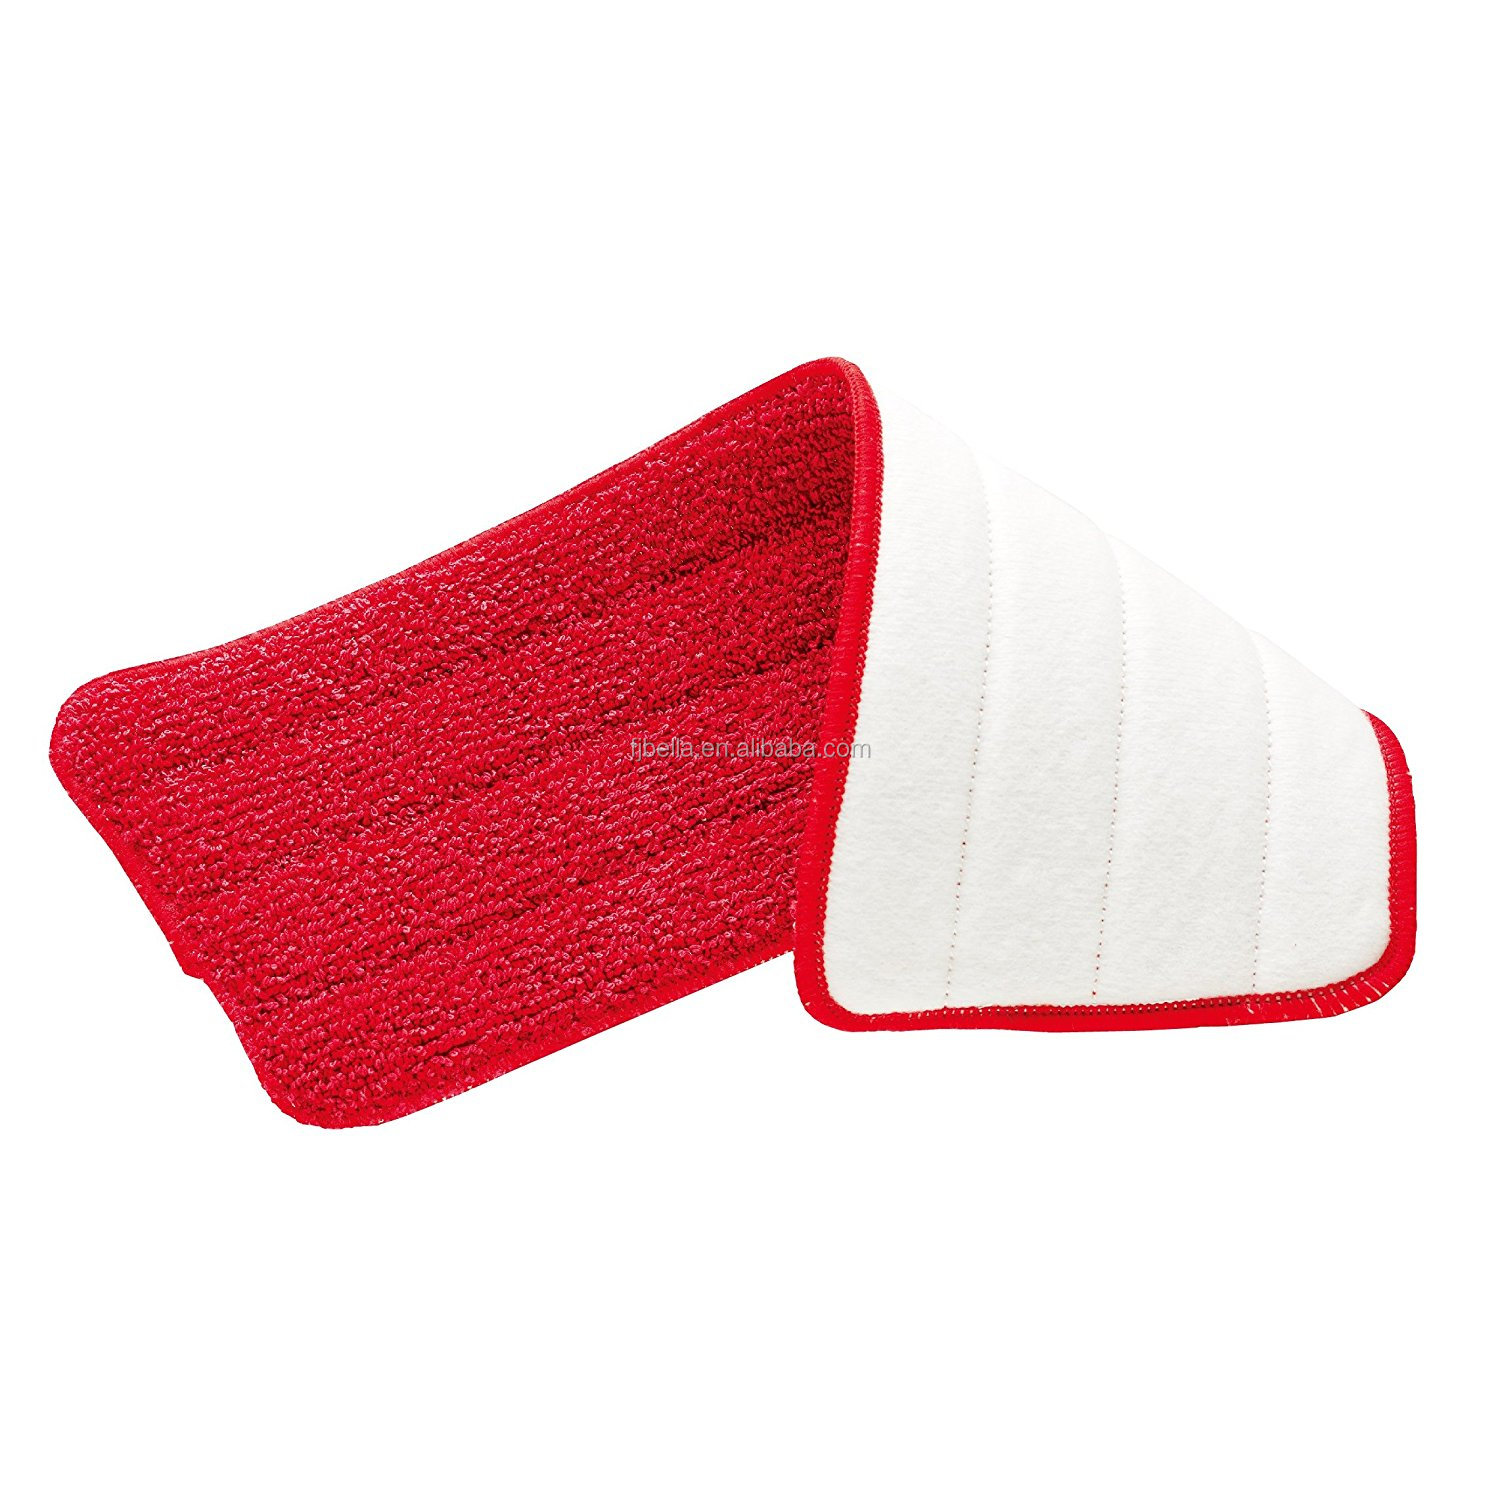 Mop Vervanging Pads Vervanging Pad voor Cleaning Kit Mop Cleaning Pad